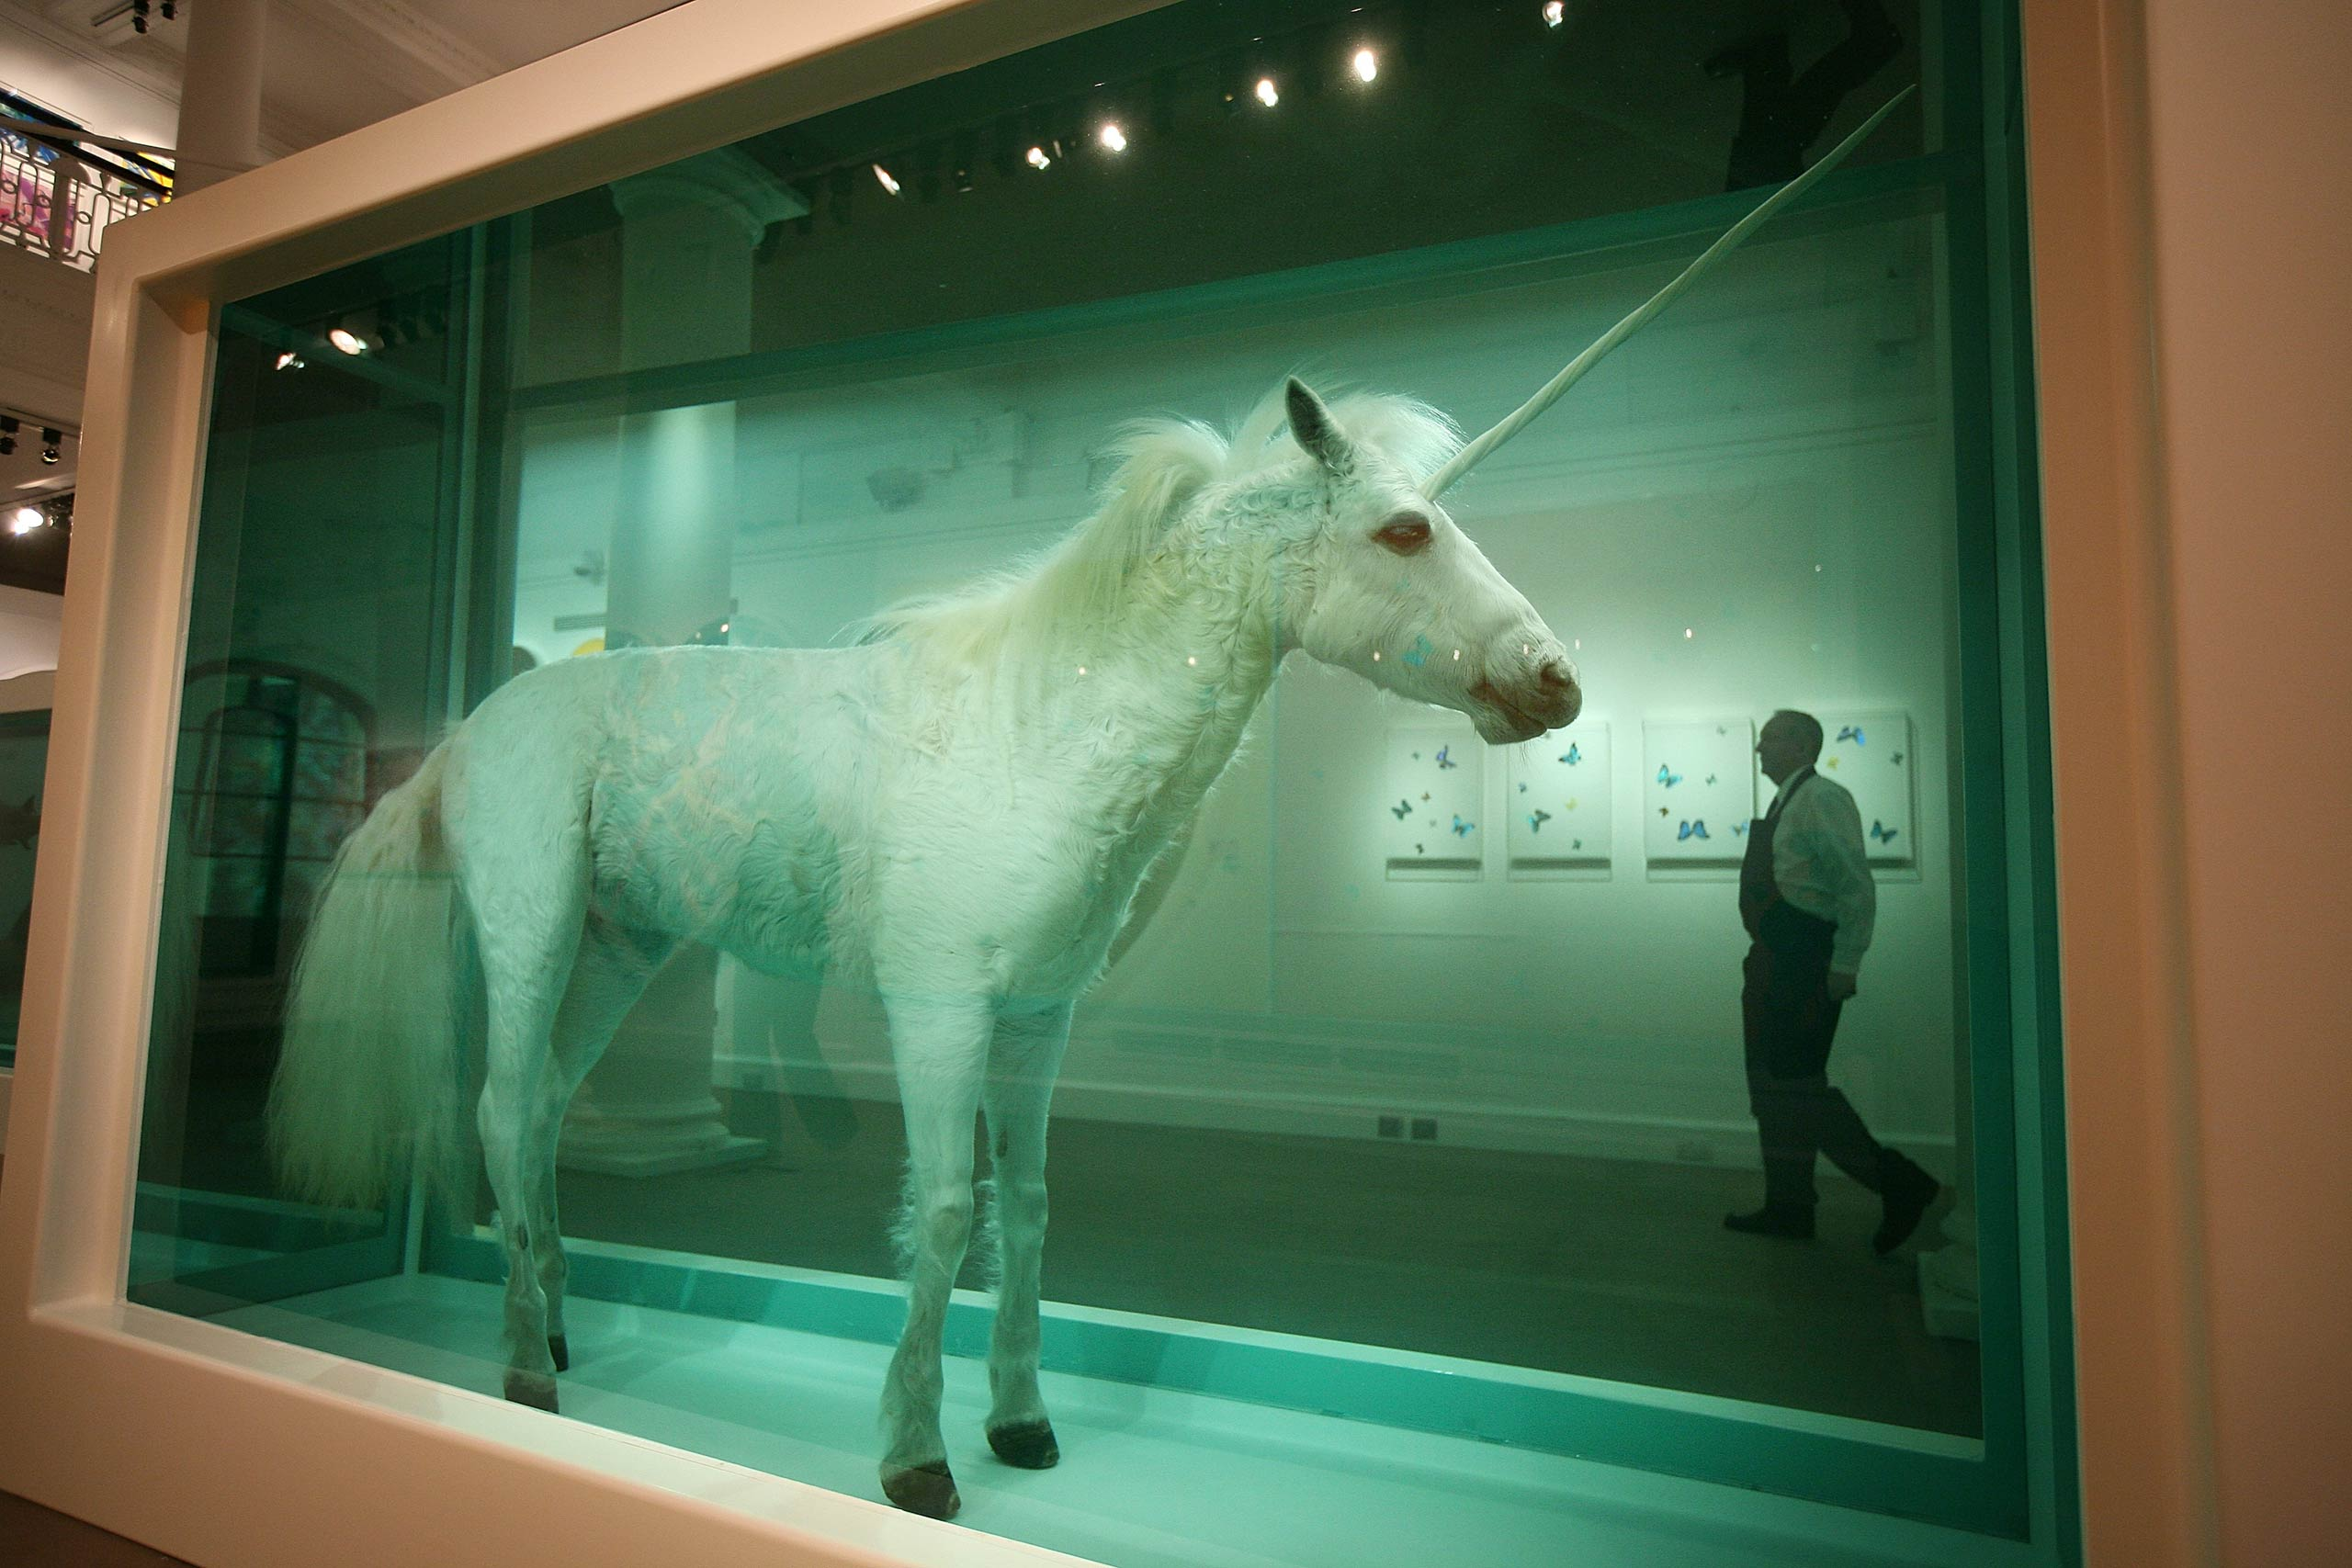 Similar to the shark work,  The Dream  (2008) preserves a horse with a unicorn's horn.